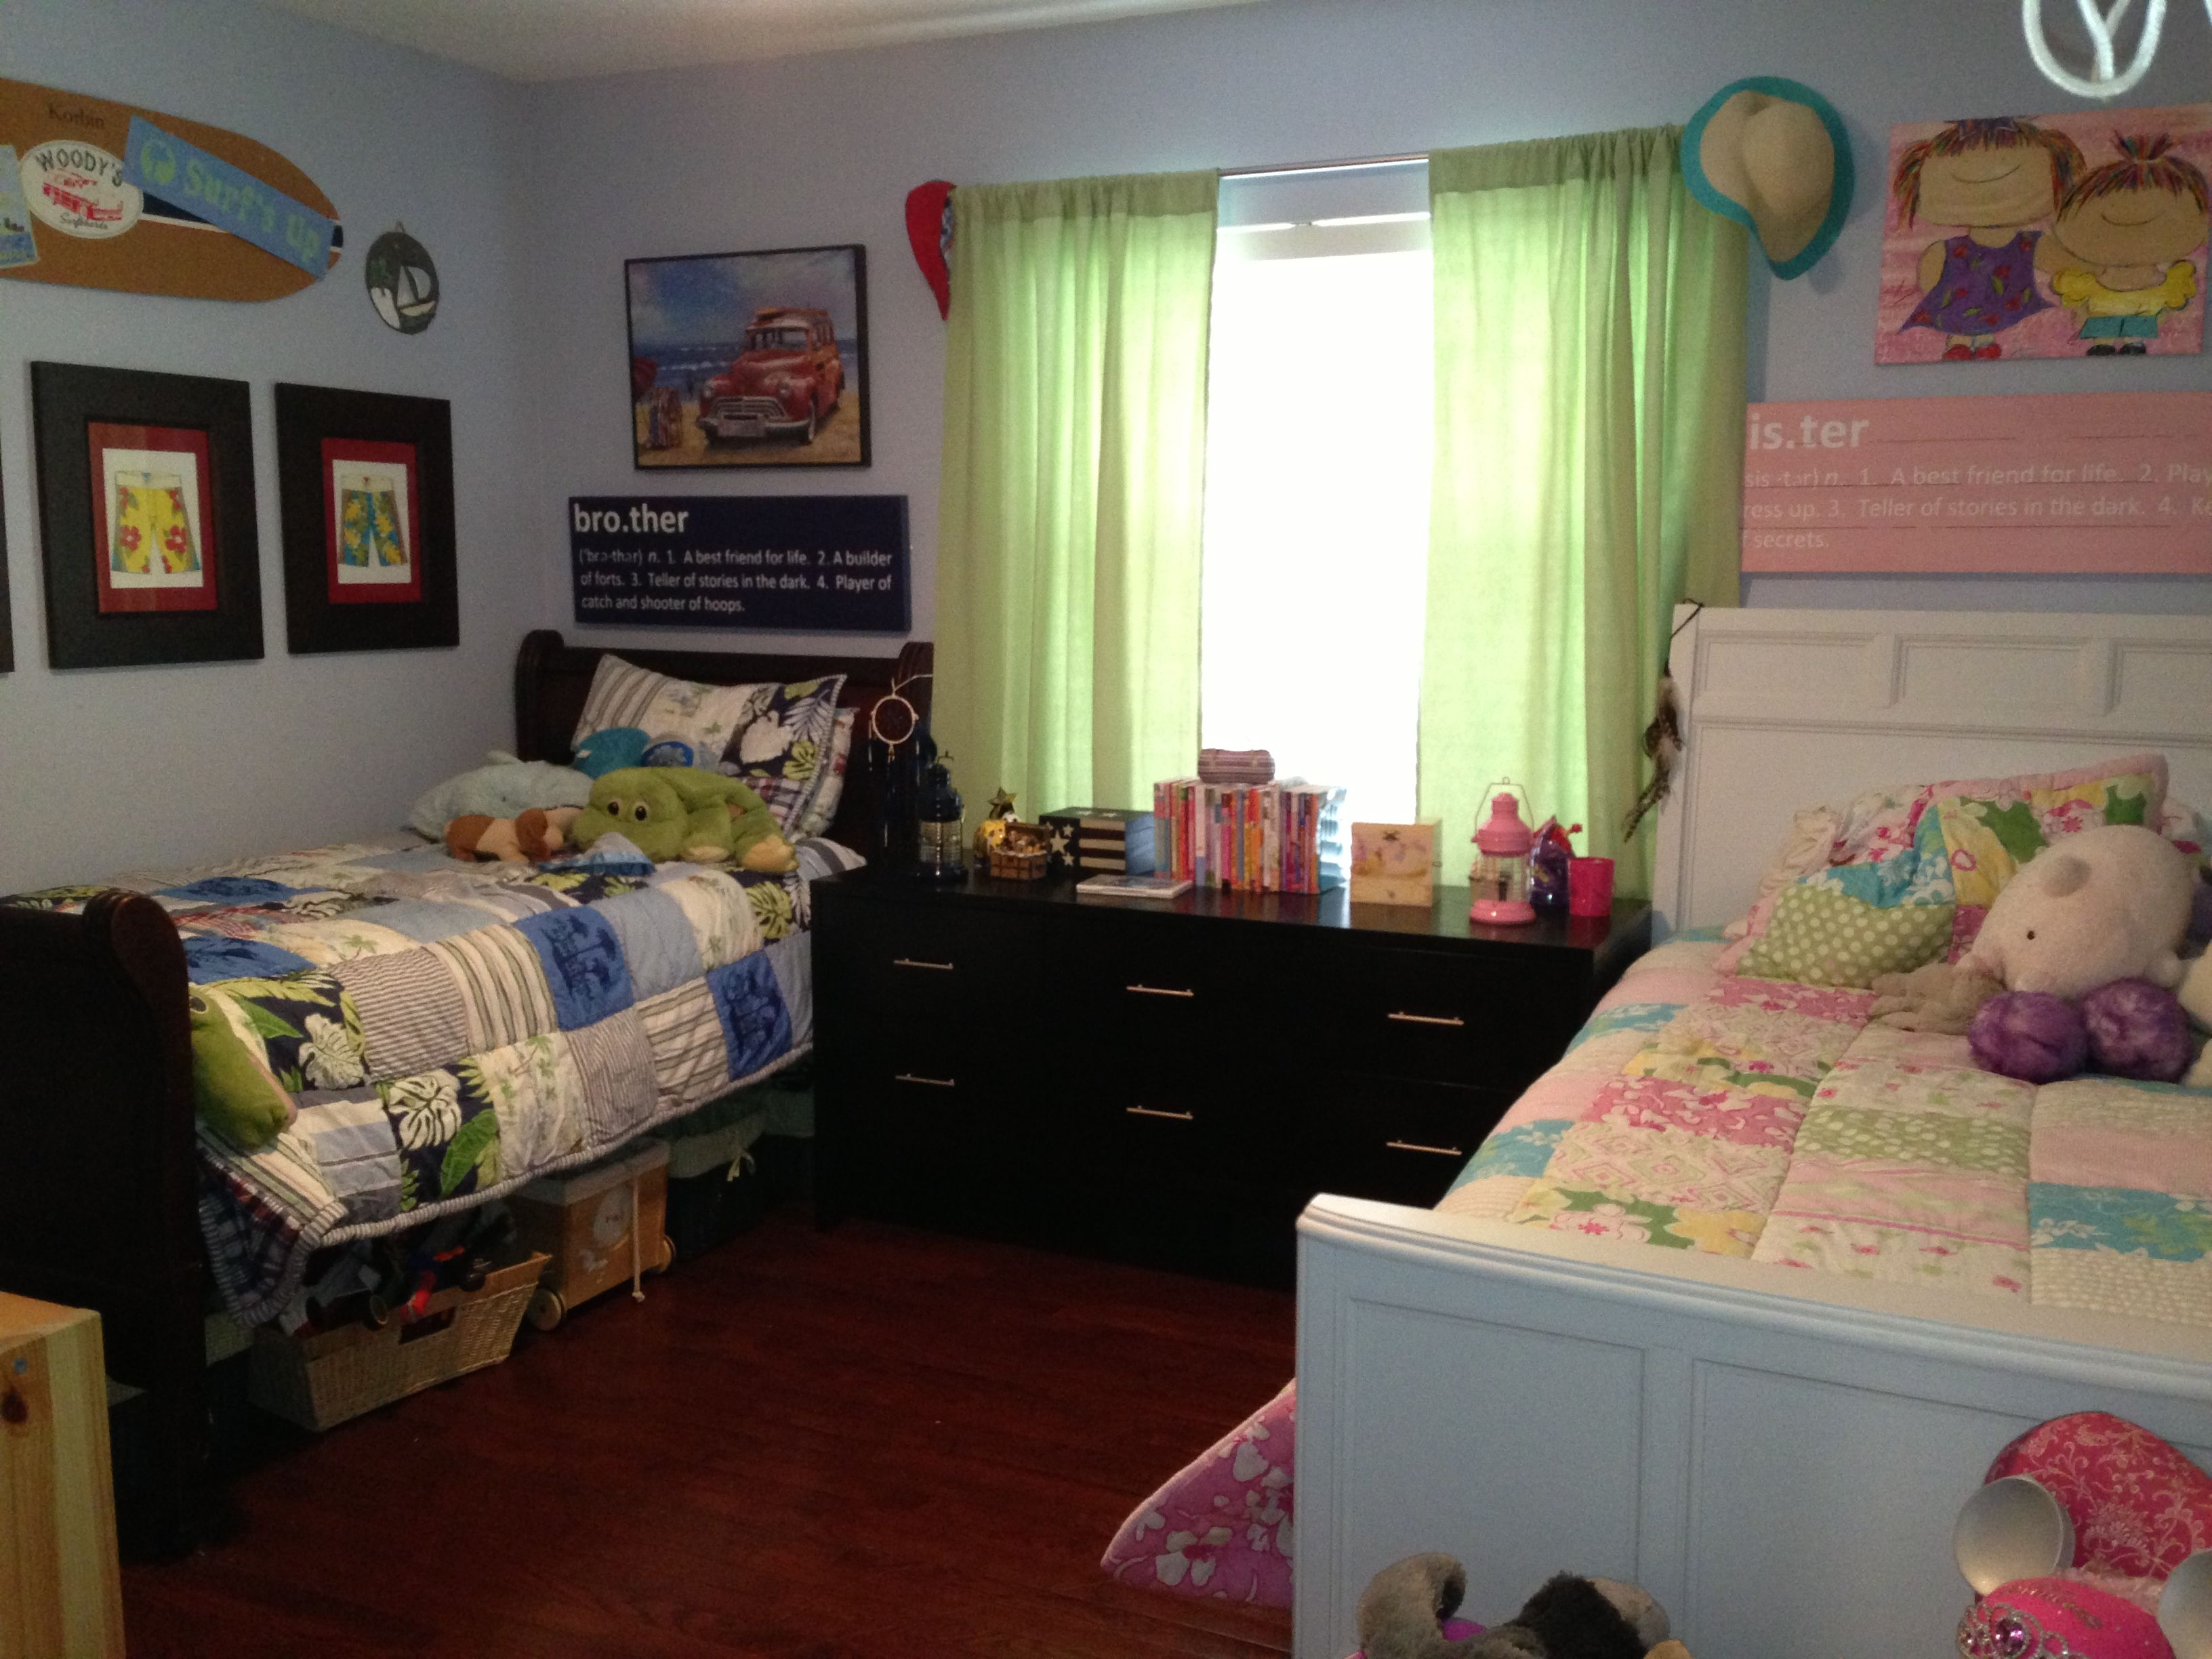 Pin By Kim Baker Gowanloch On 2 Peas In A Pod Boy And Girl Shared Room Kids Rooms Shared Boy And Girl Shared Bedroom